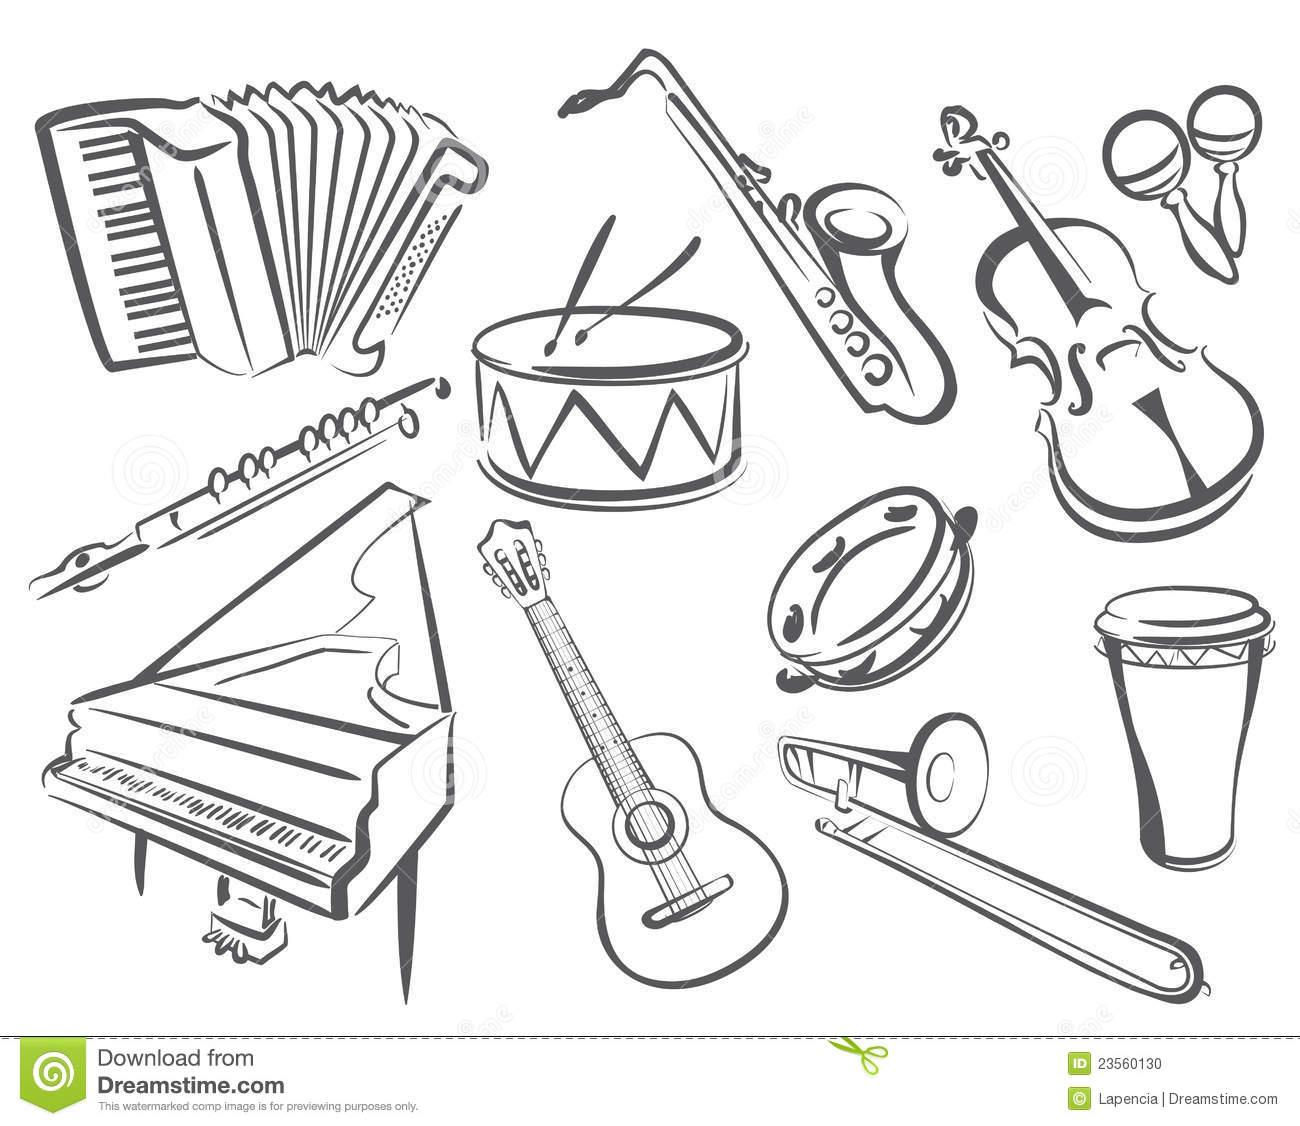 Free printable pictures of musical instruments 5 Pinoy Celebrity Scandals Made Man